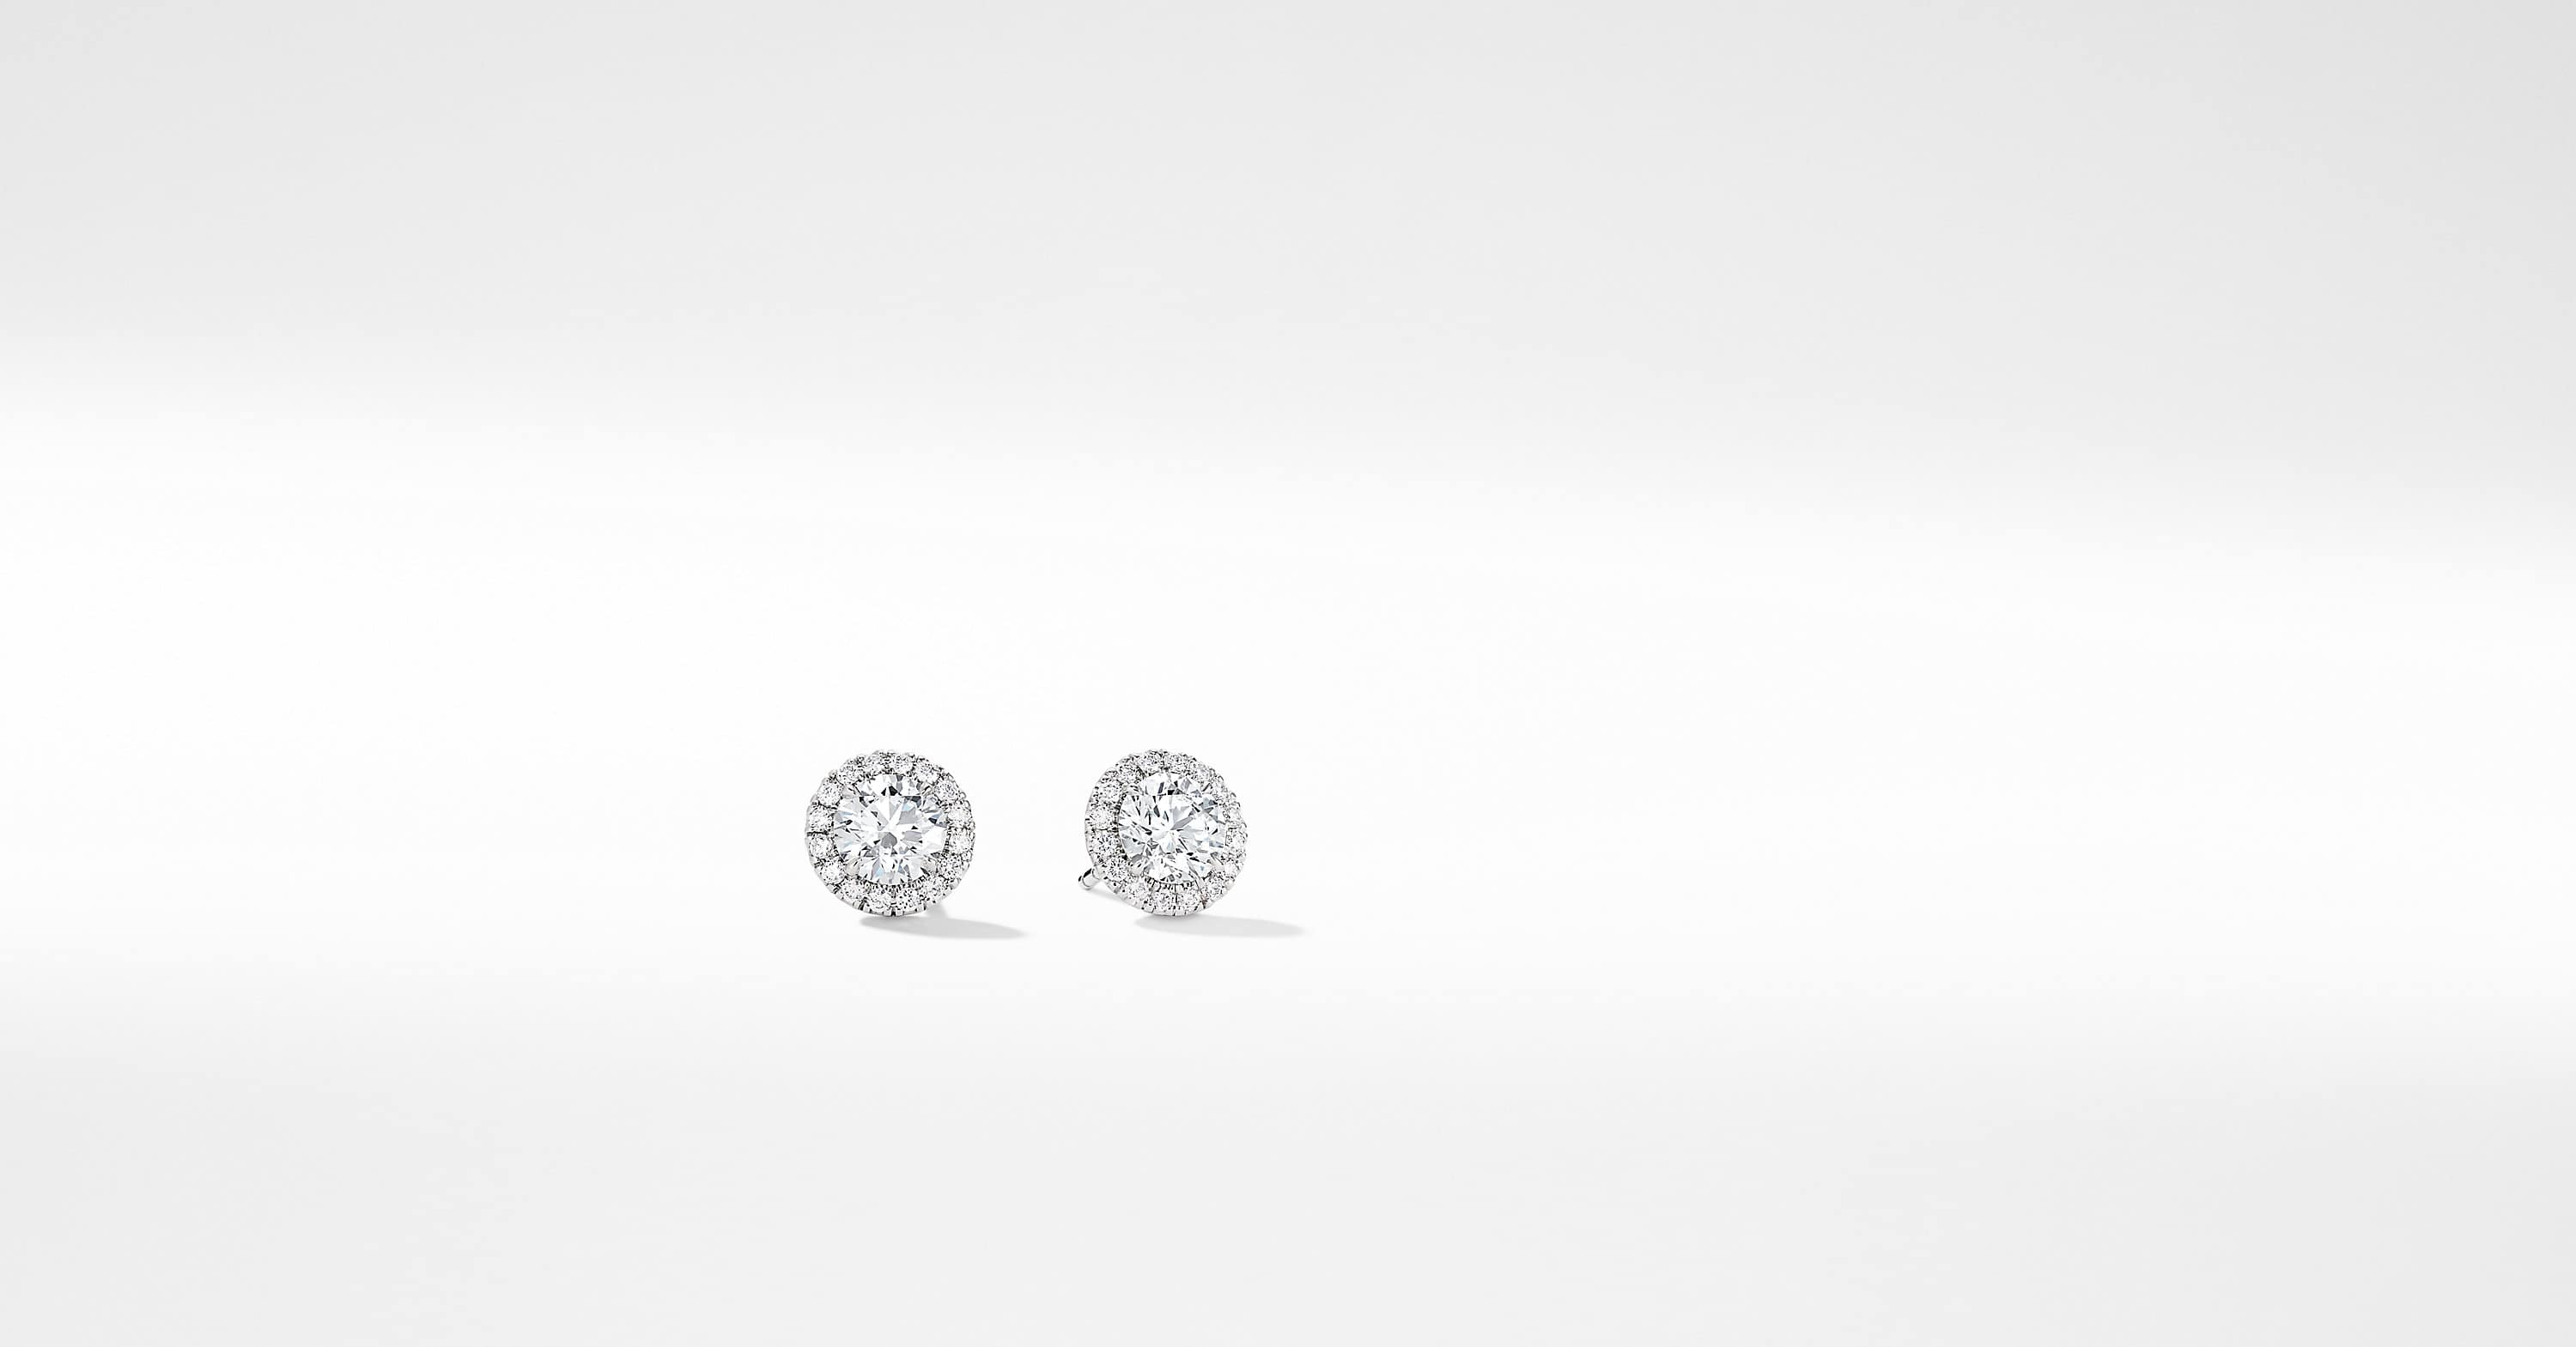 Clous d'oreilles DY Capri en or blanc 18 carats avec diamants